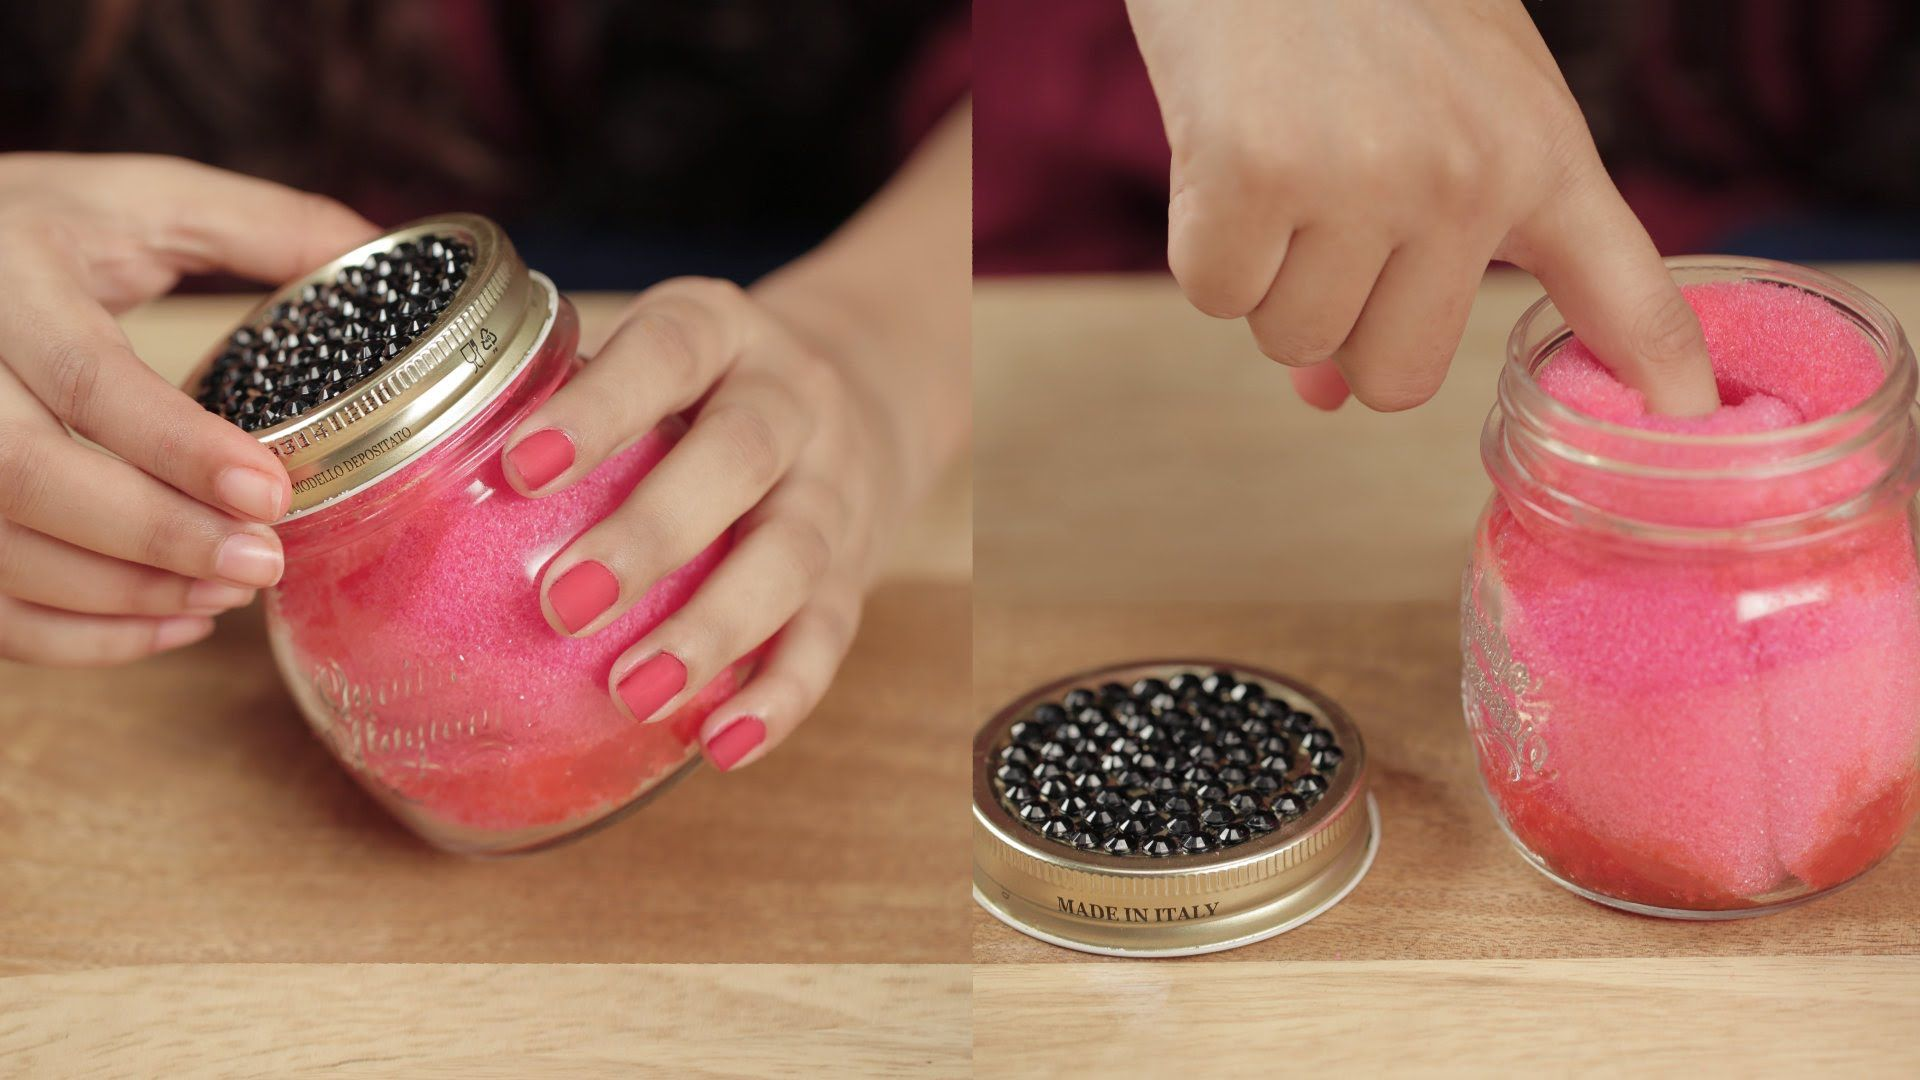 Dip And Twist Nail Polish Remover Jar DIY Glamrs (With